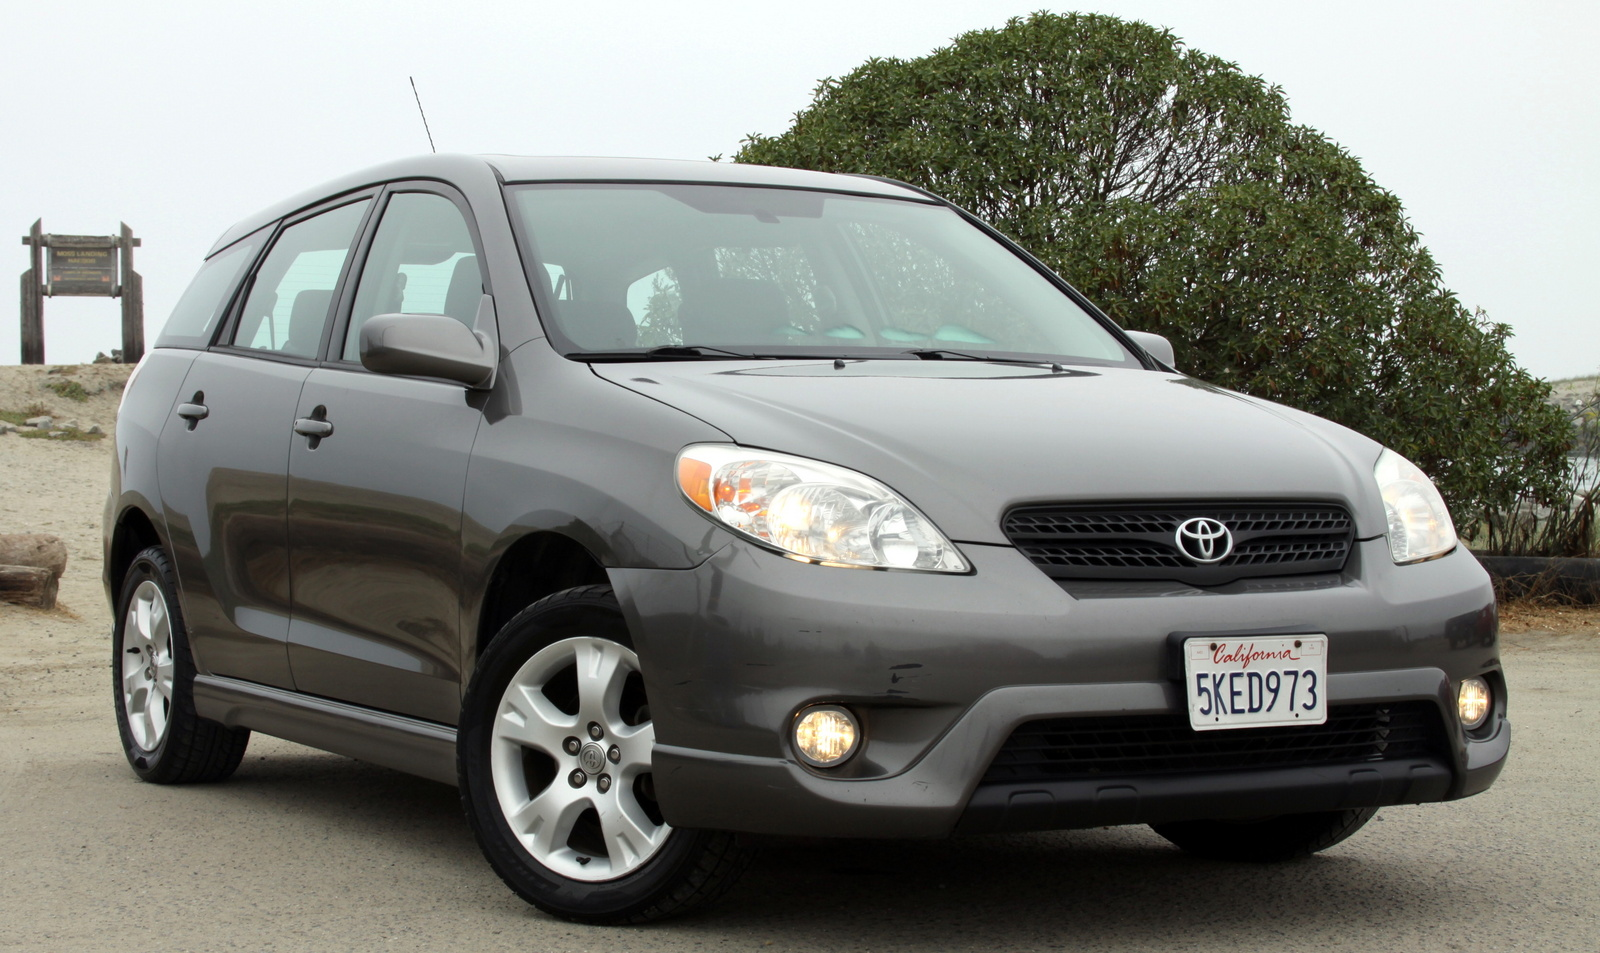 2005 toyota matrix exterior pictures cargurus. Black Bedroom Furniture Sets. Home Design Ideas